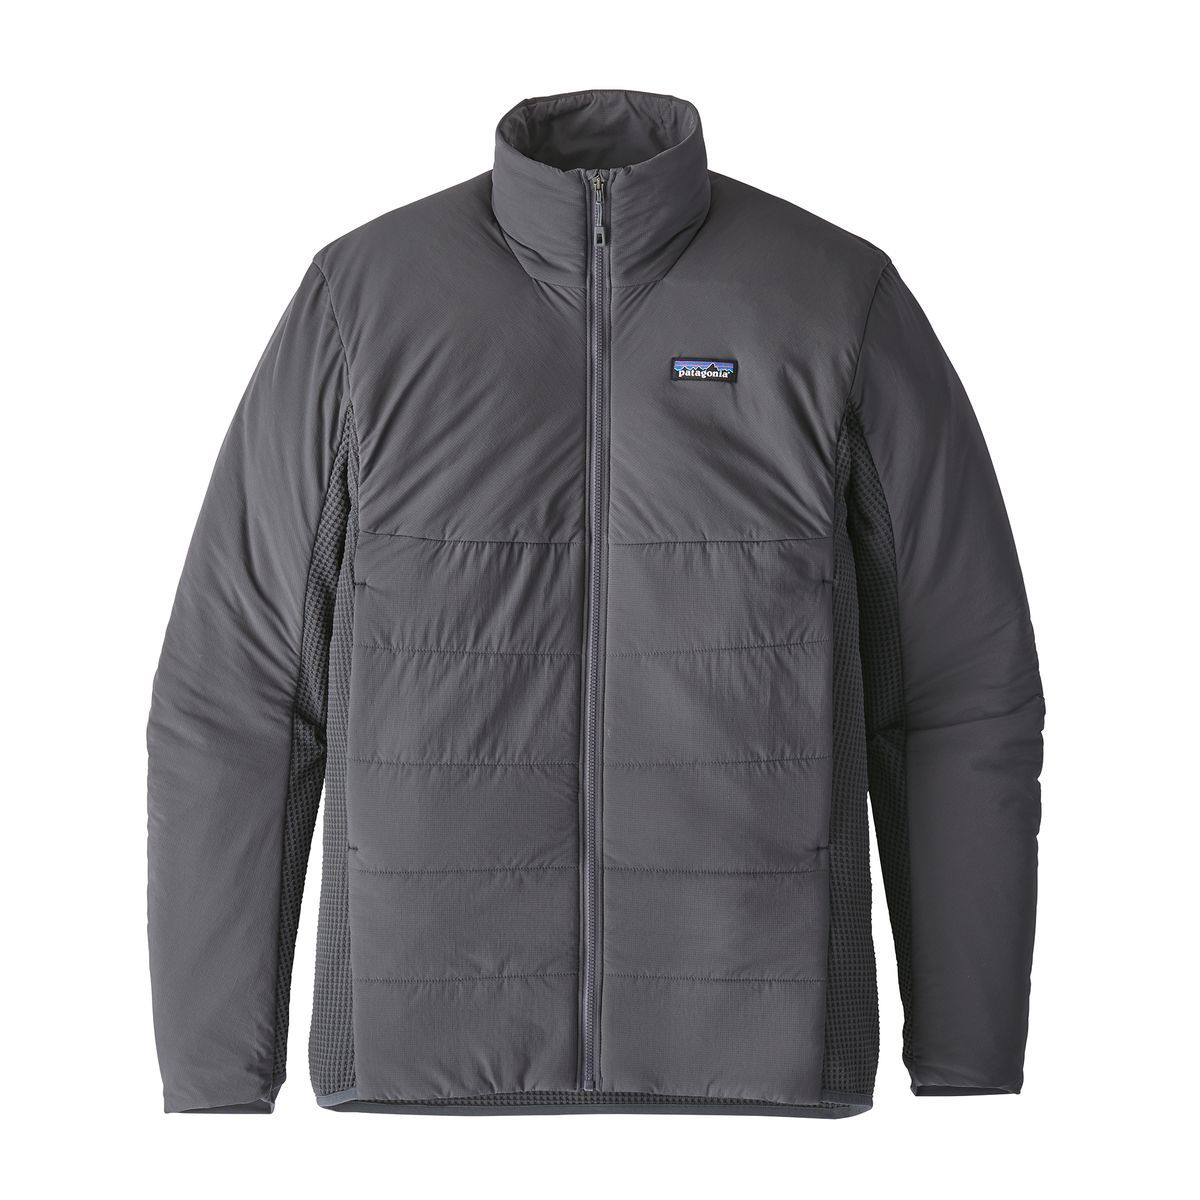 Men's NanoAir® Light Hybrid Jacket Mens jackets, Jackets